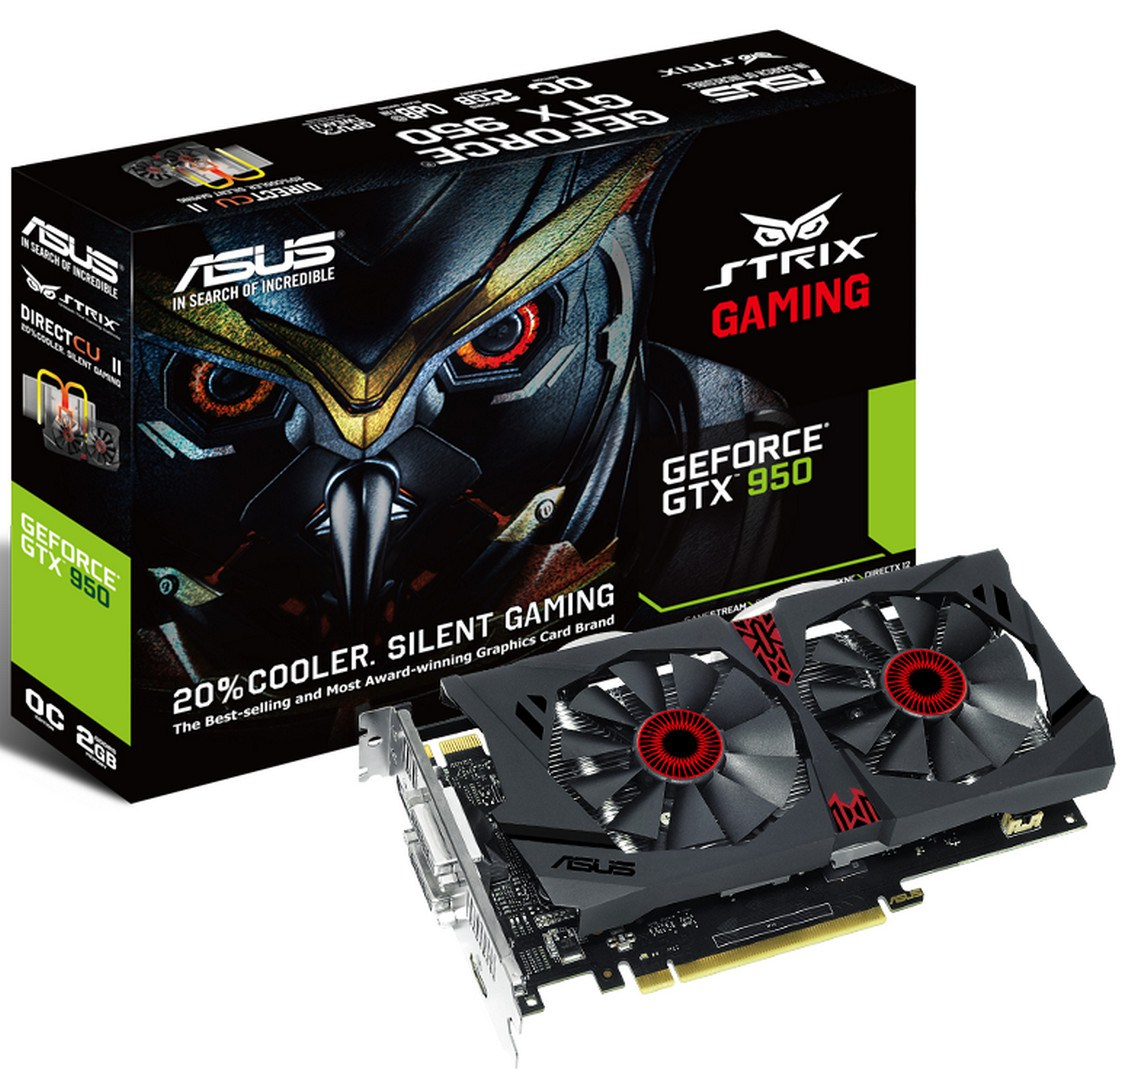 asus-strix-gtx950-dc2oc-2gd5-gaming-mit-packung_206537.jpg